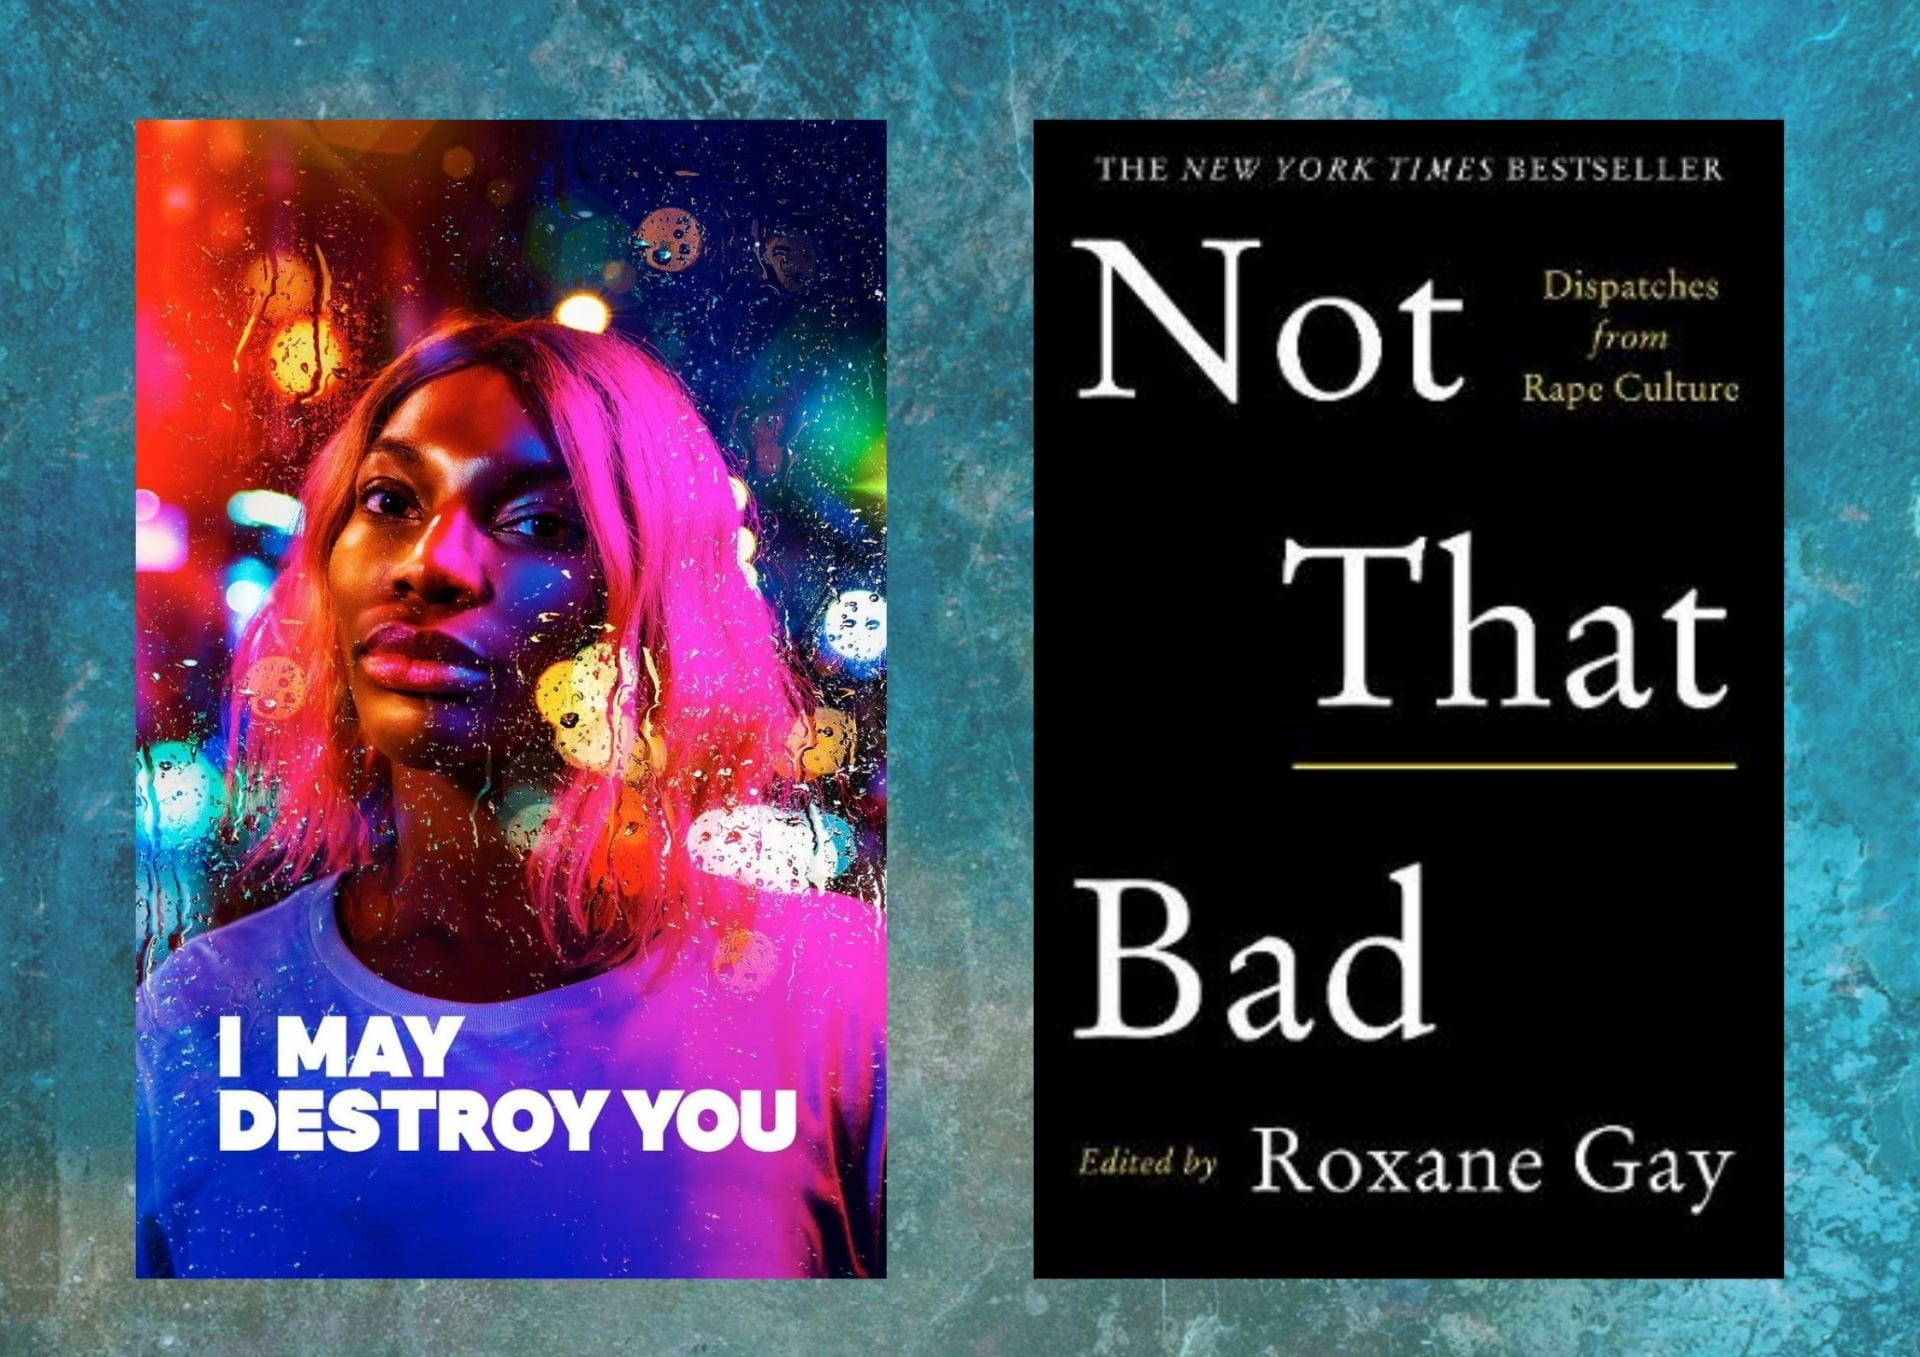 Two covers on a blue background. On the left is 'I May Destroy You'. A photo of Michaela Coel seemingly behind glass with rain on it. In the background is streetlights. On the right is 'Not That Bad'. It is a black book cover. At the top reads 'The New York Times Bestseller'. In big text, it read 'Not That Bad'. In smaller writing to the right of the title it reads 'Dispatches from Rape Culture'. At the bottom, it reads 'Edited by Roxane Gay'.